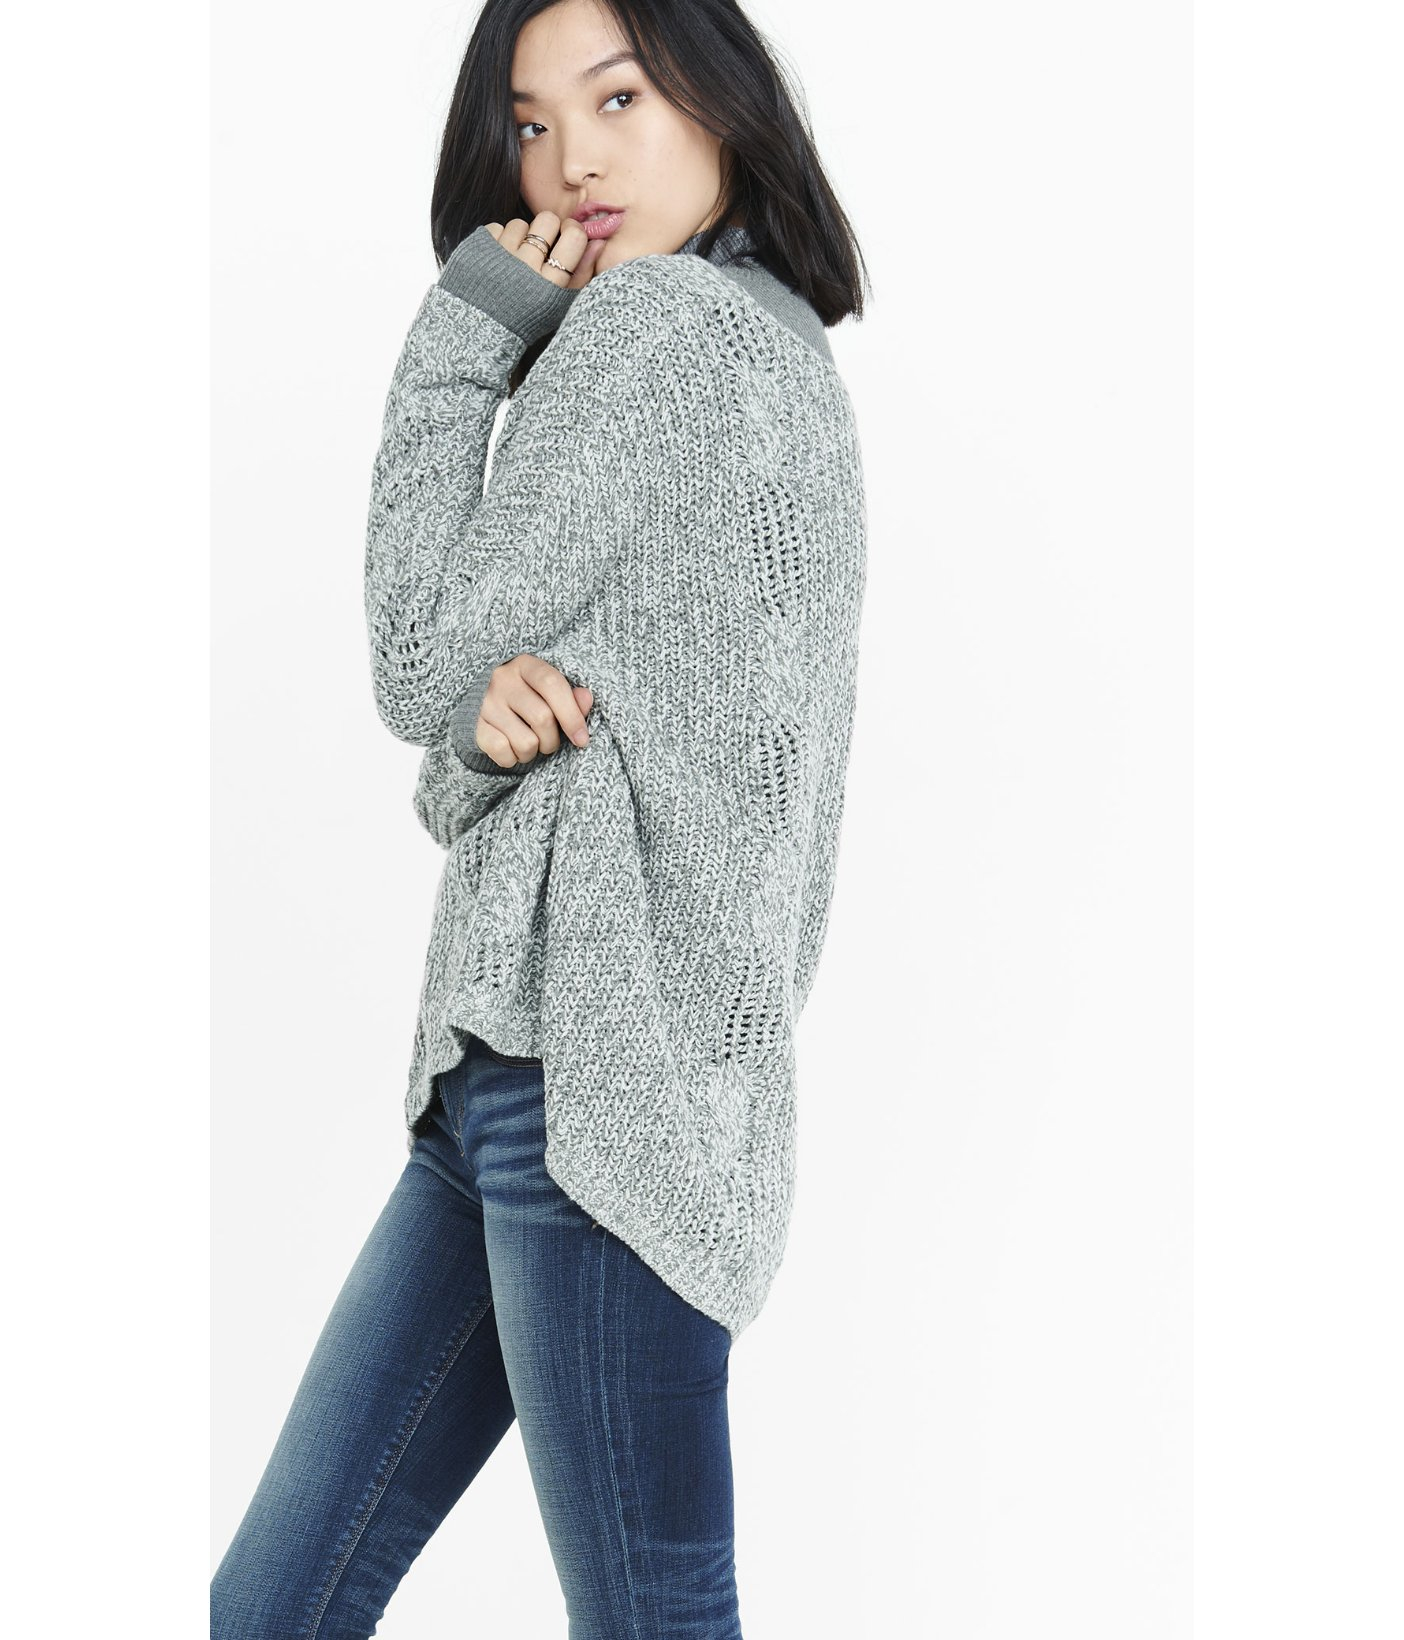 Express One Eleven Oversize Cable Knit Sweater in Green | Lyst